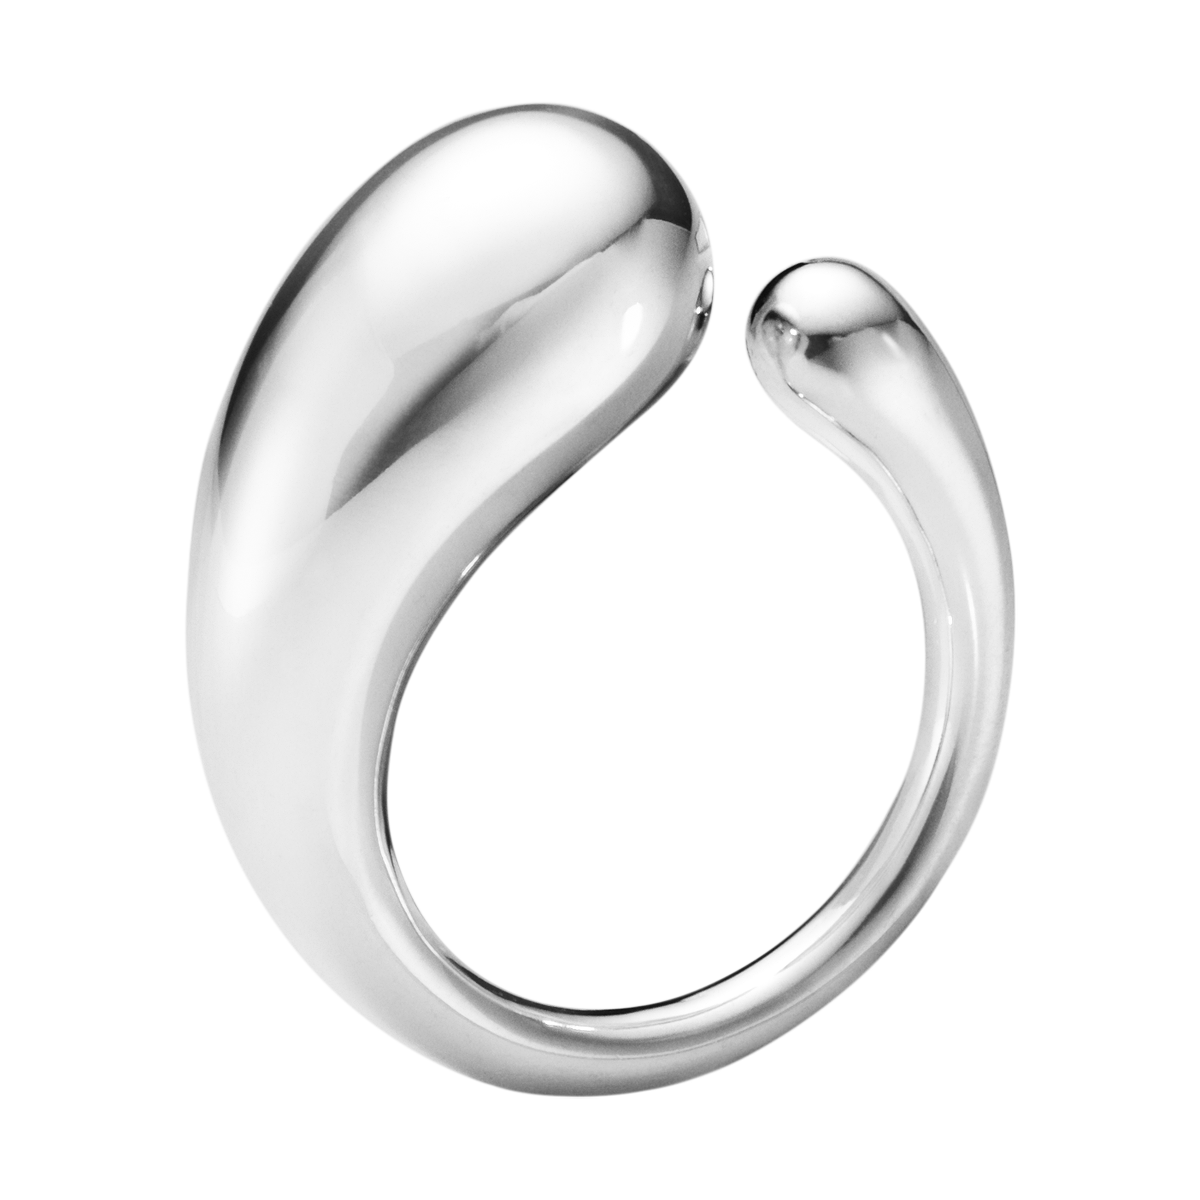 Mercy Large Simple Ring In Sterling Silver Georg Jensen